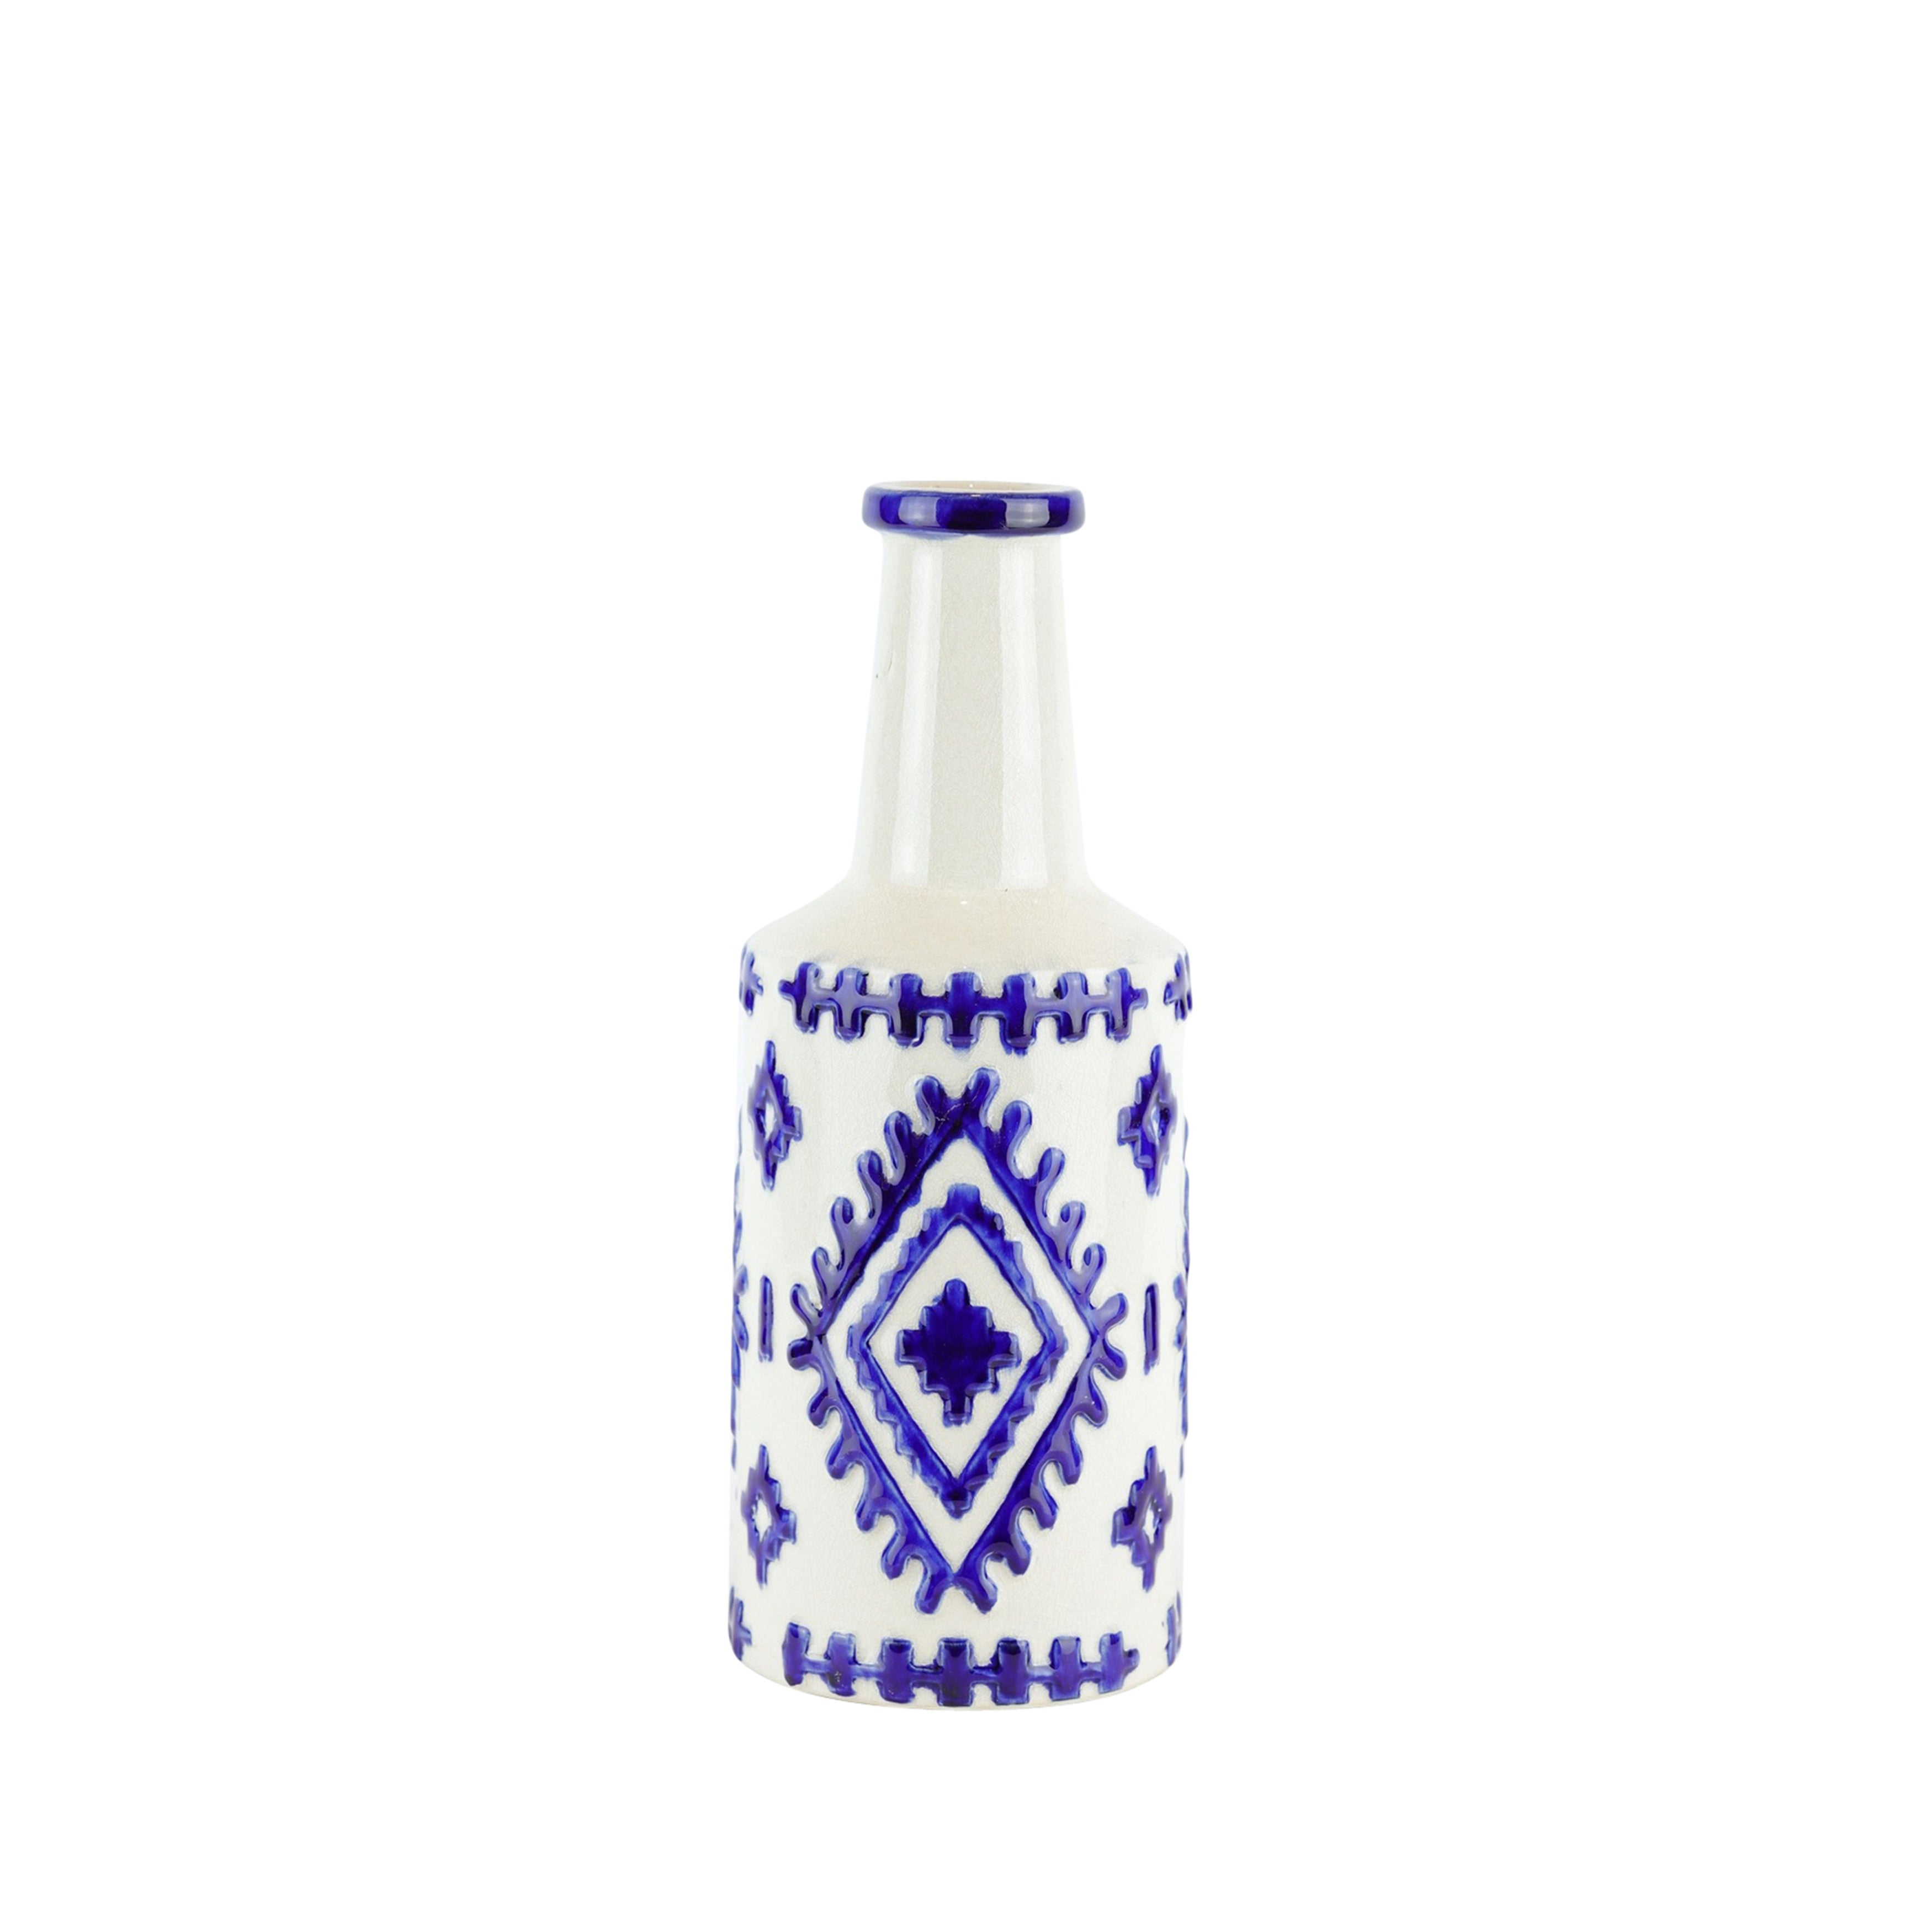 Bottle Shape Decorative Ceramic Vase with Tribal Design, Small, White and Blue